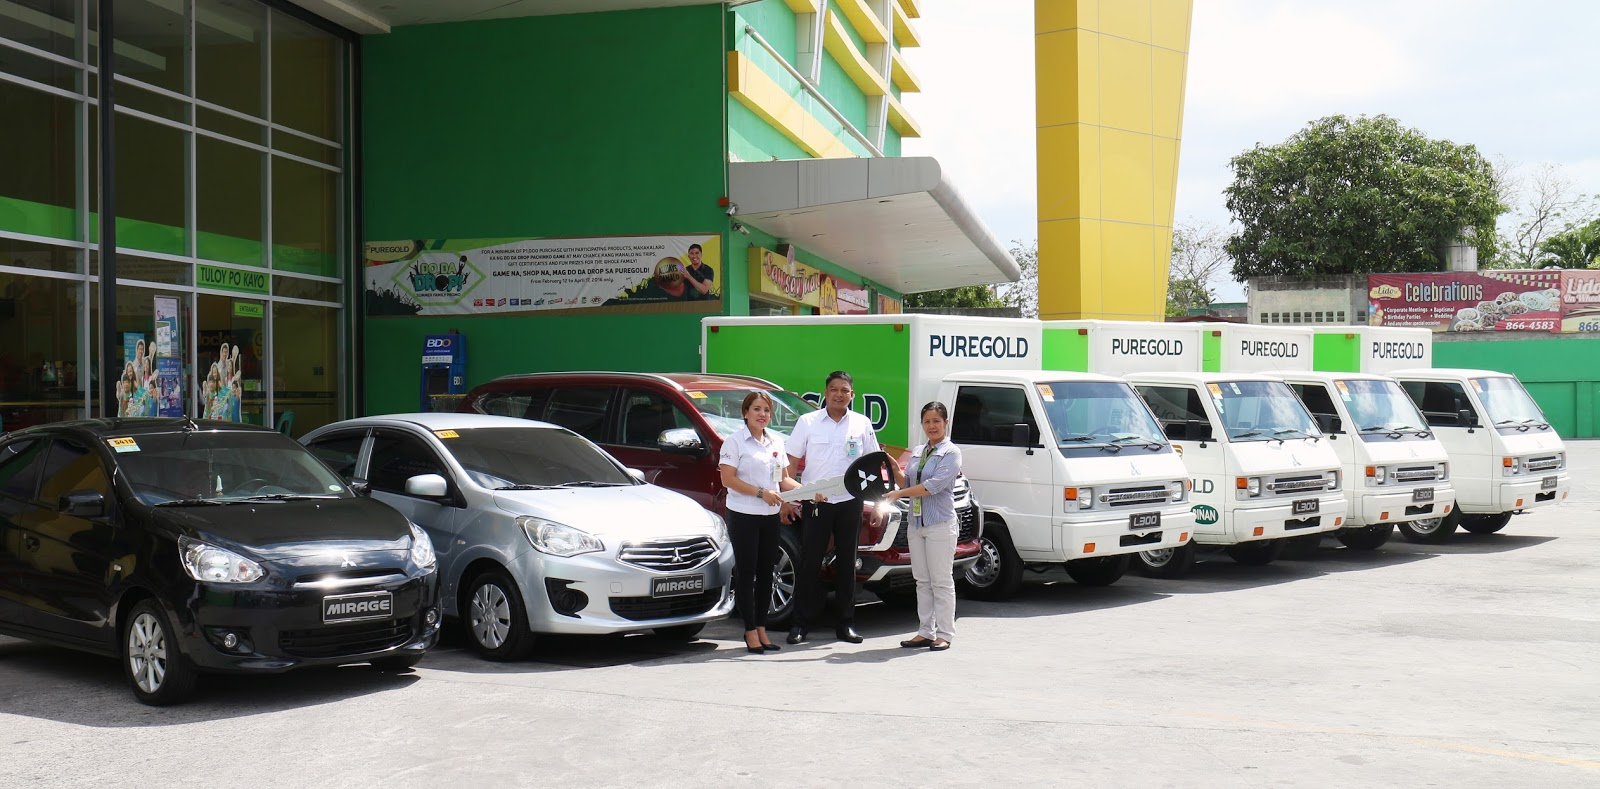 Puregold chooses Mitsubishi vehicles